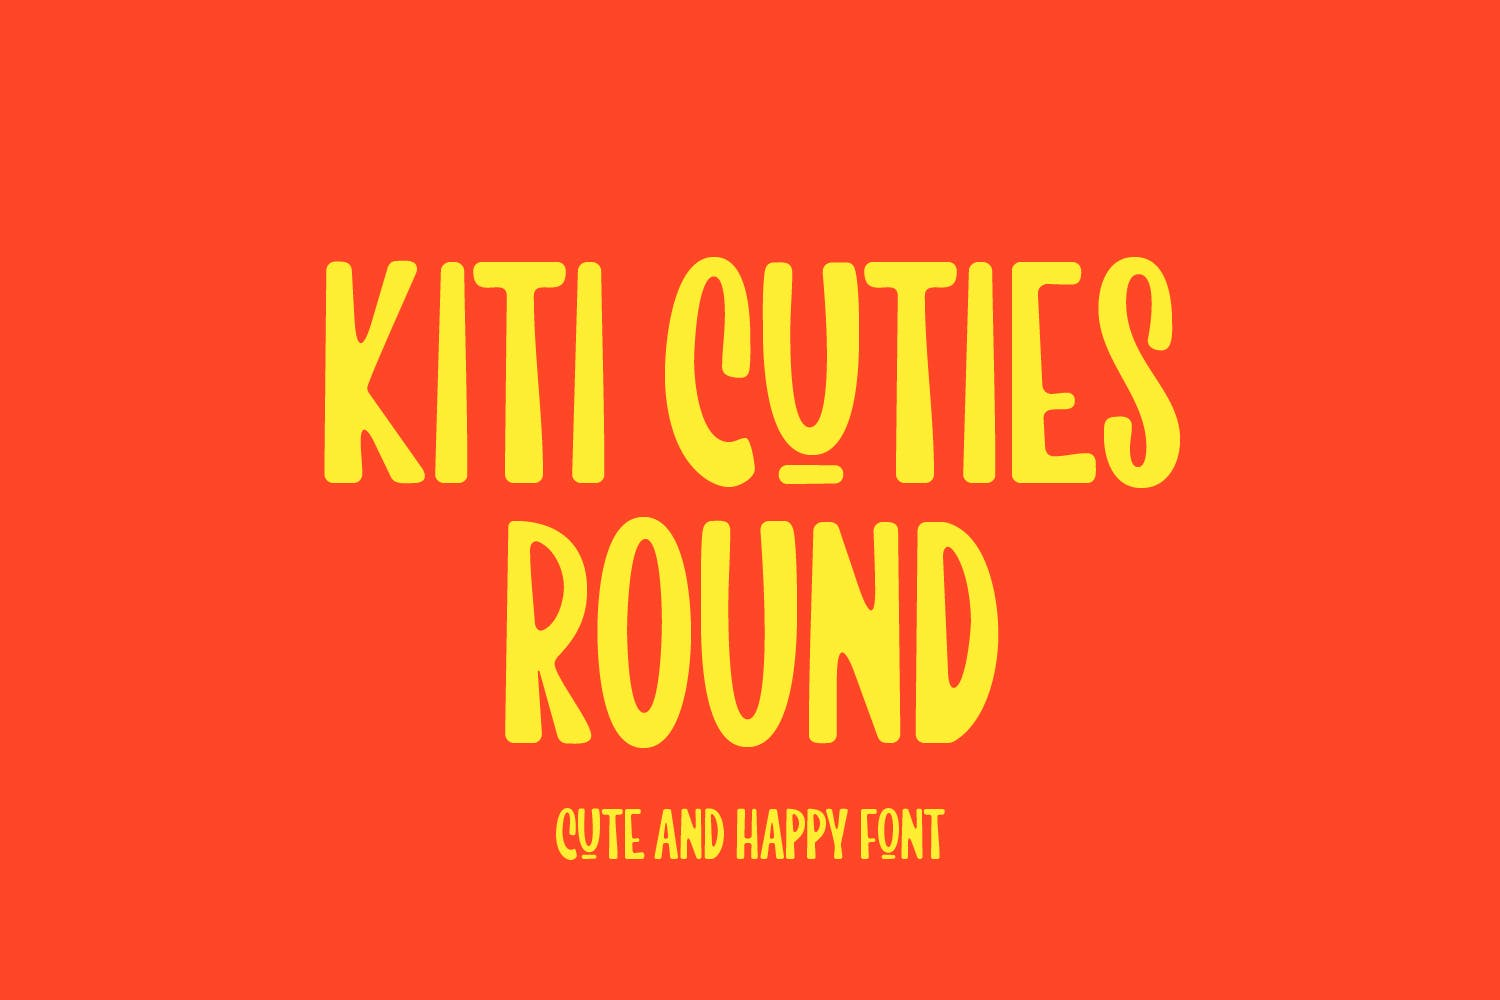 rounded font